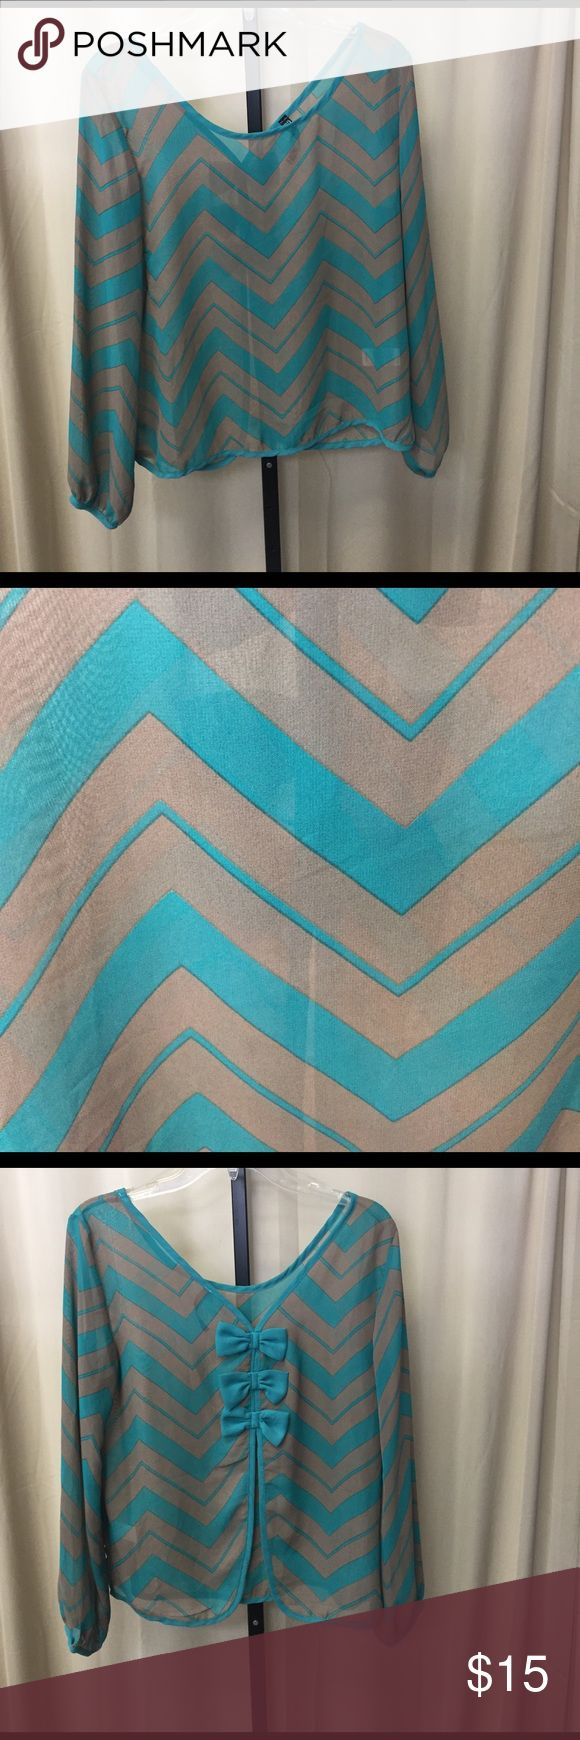 Chevron shirt ~NO TRADES~REASONABLE OFFERS ACCEPTED~PLEASE ASK ALL QUESTIONS BEFORE PURCHASING~ALL OFFERS MUST BE MADE THROUGH THE OFFER BUTTON. OFFERS LEFT IN COMMENTS WONT BE ACKNOWLEDGED~NO LOWBALL OFFERS~NO HOLDS Francesca's Collections Tops